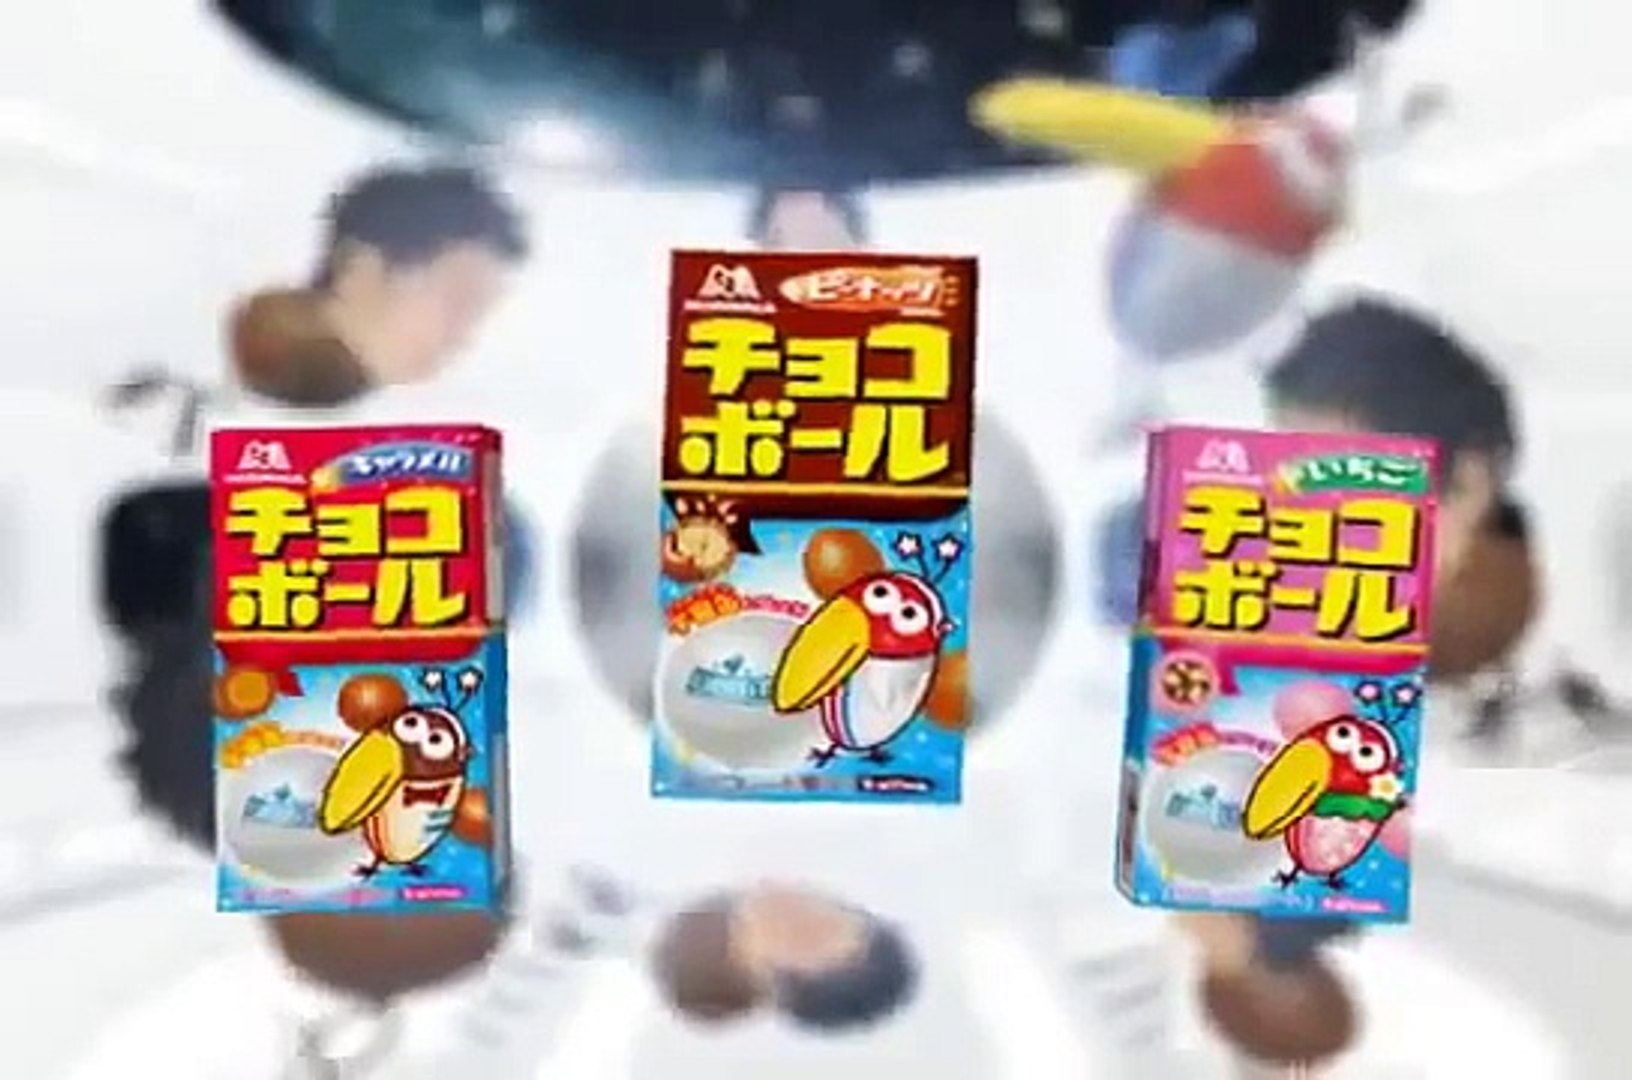 Funny Commercial   Quack! Chocoball Commercial Compolation   Japanese Commercial